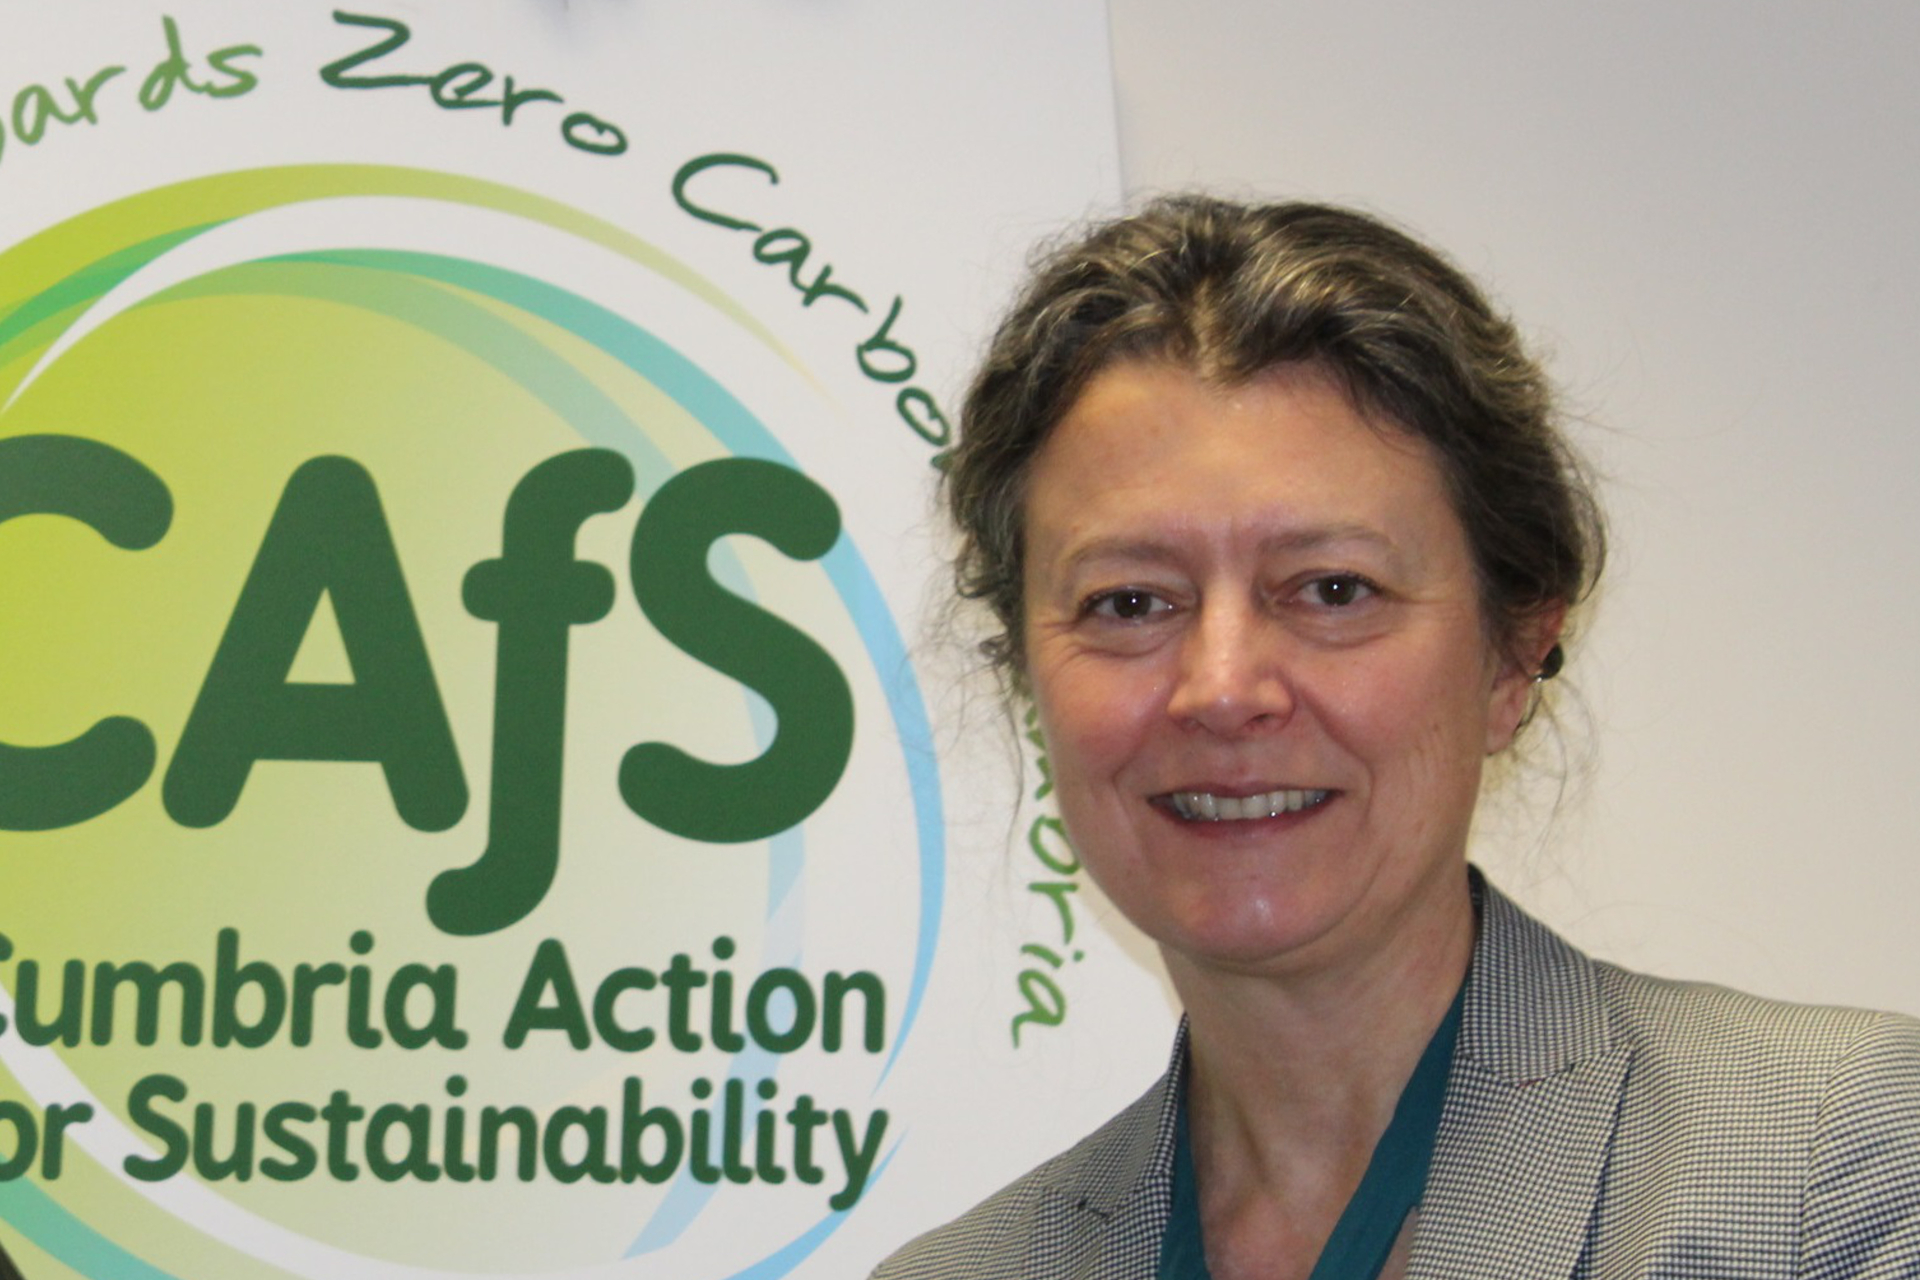 Karen Mitchell, chief executive of CAfS